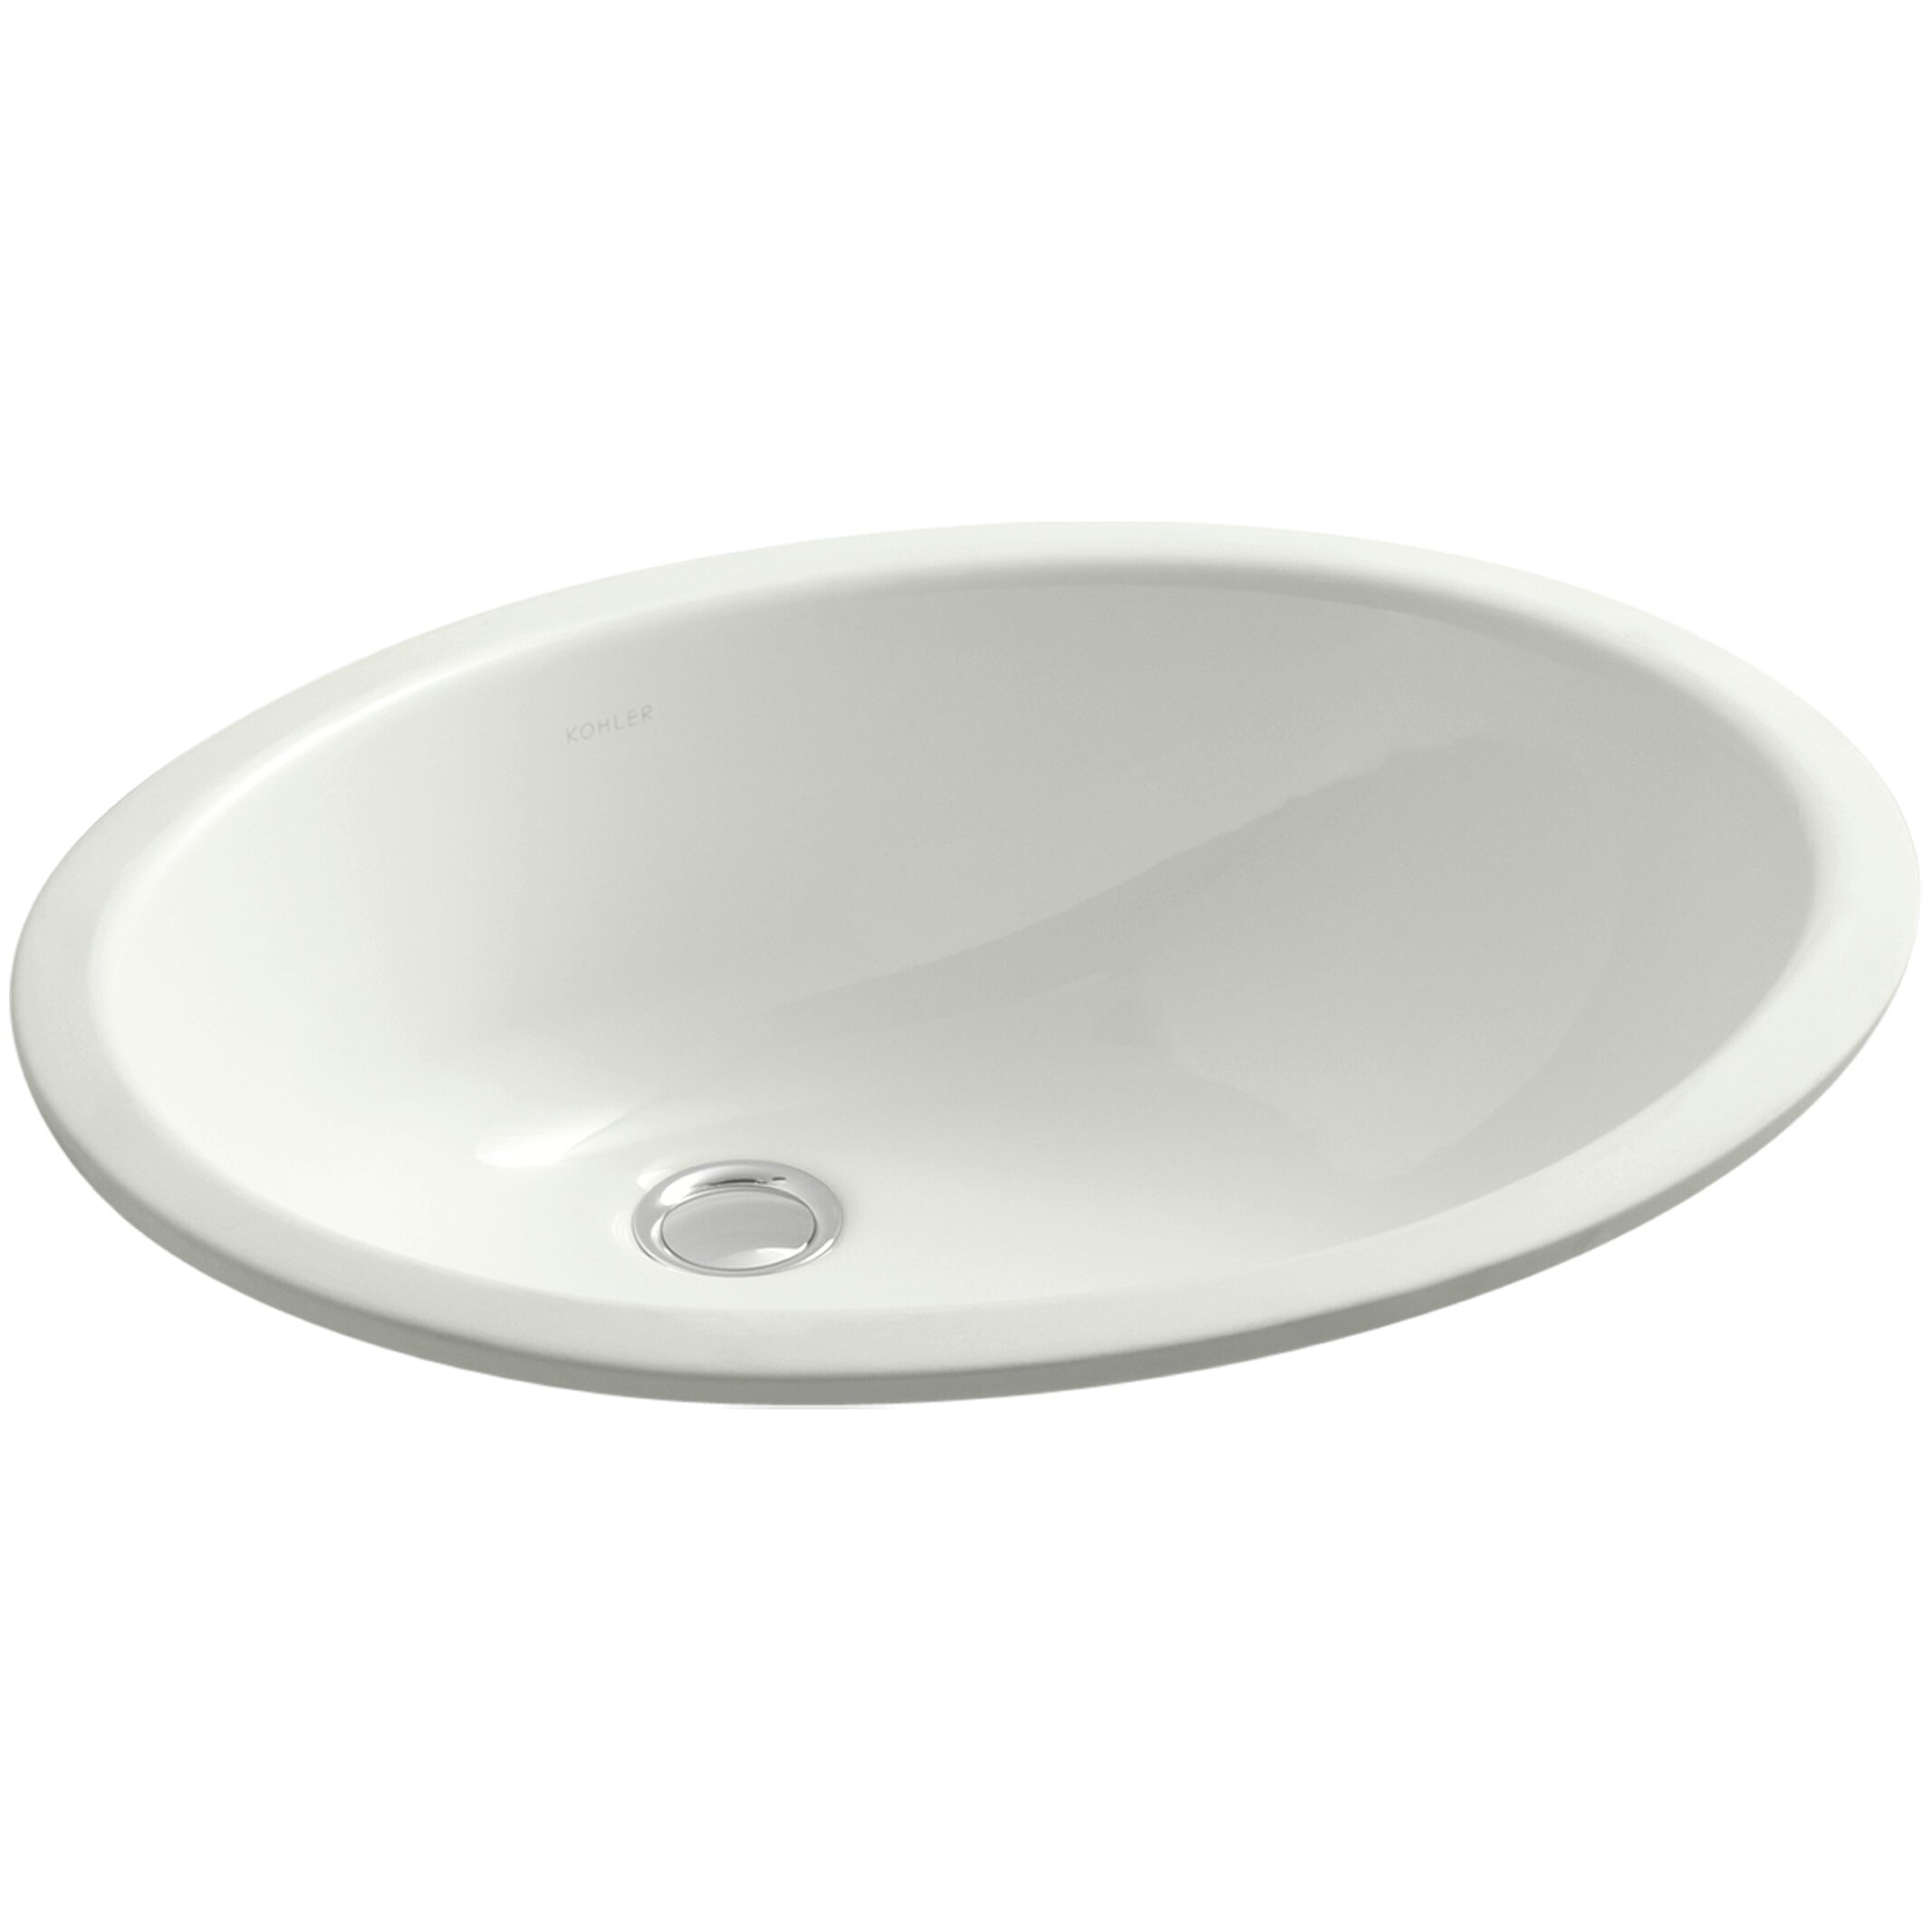 Kohler Caxton Undermount Bathroom Sink With Overflow And Clamp Assembly Reviews Wayfair